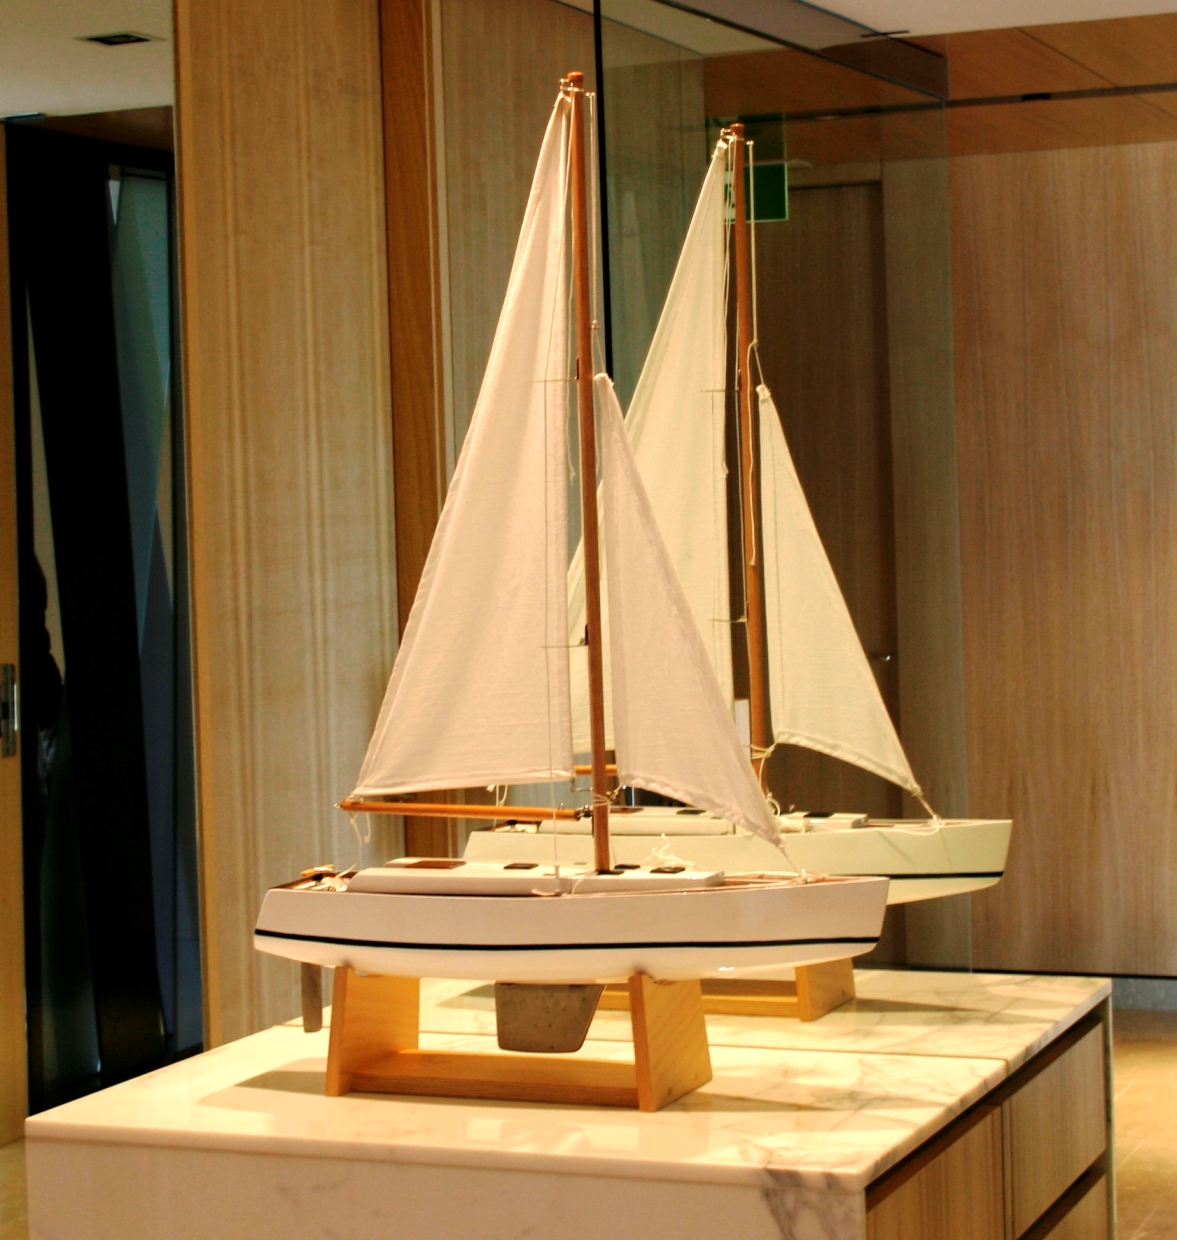 'Laine' the Swan 53 1:25 scale model